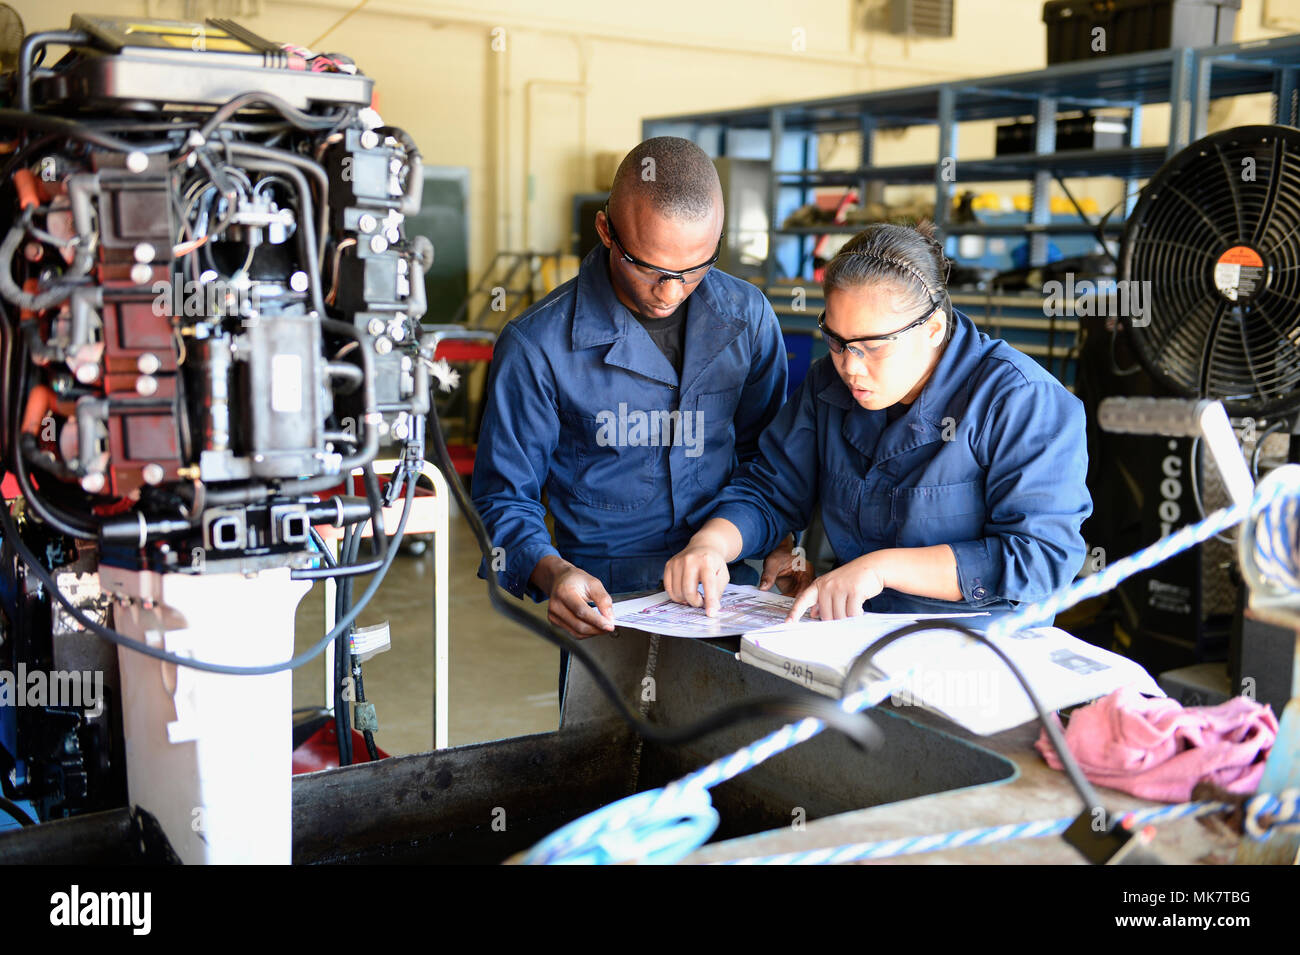 Students go over schematics of an outboard boat engine as part of the Lake Chad Basin Initiative, Nov. 15, 2017 at the Naval Small Craft Instruction and Technical Training School on Stennis Space Center, Miss. NAVSCIATTS is working through the Trans-Sahara Counterterrorism Partnership to facilitate the inaugural iteration of the Lake Chad Basin Initiative. The objective of the iteration is to increase partner nations' abilities to project force against violent extremist organization safe havens within the Lake Chad region using continental United States based maintenance and leadership trainin - Stock Image